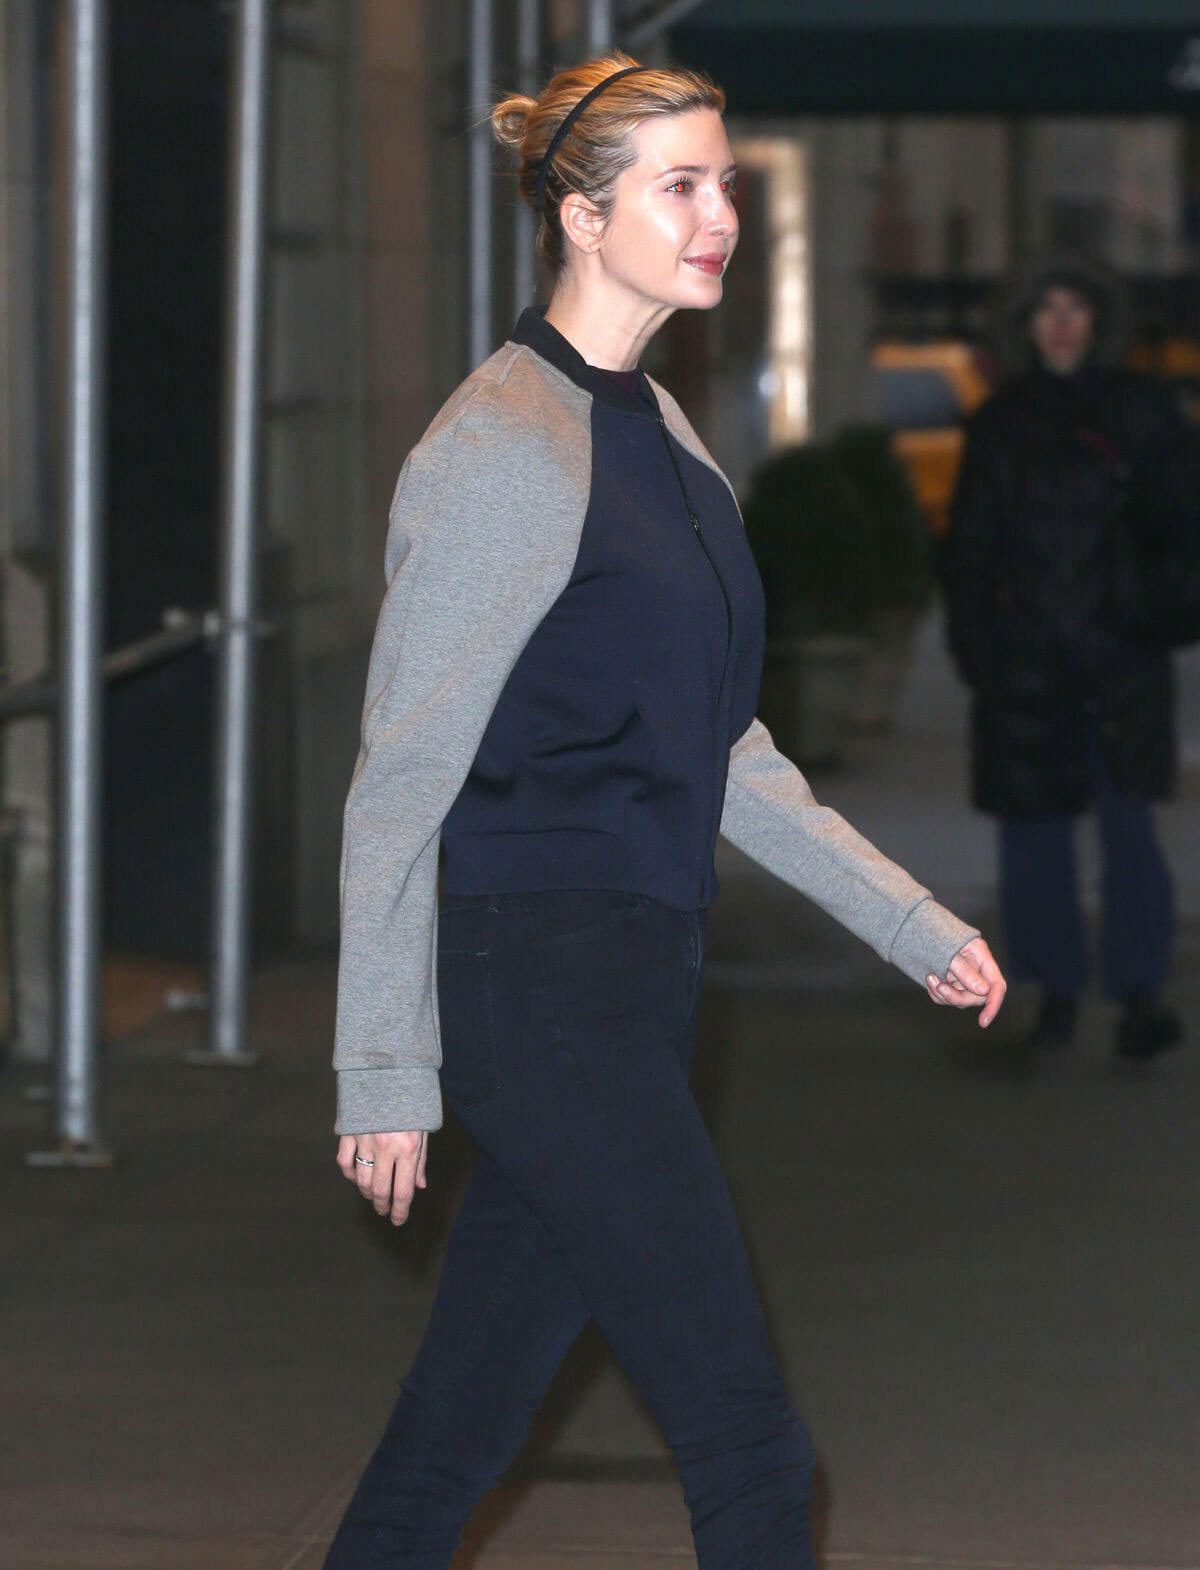 Ivanka Trump Heading To A Gym in New York